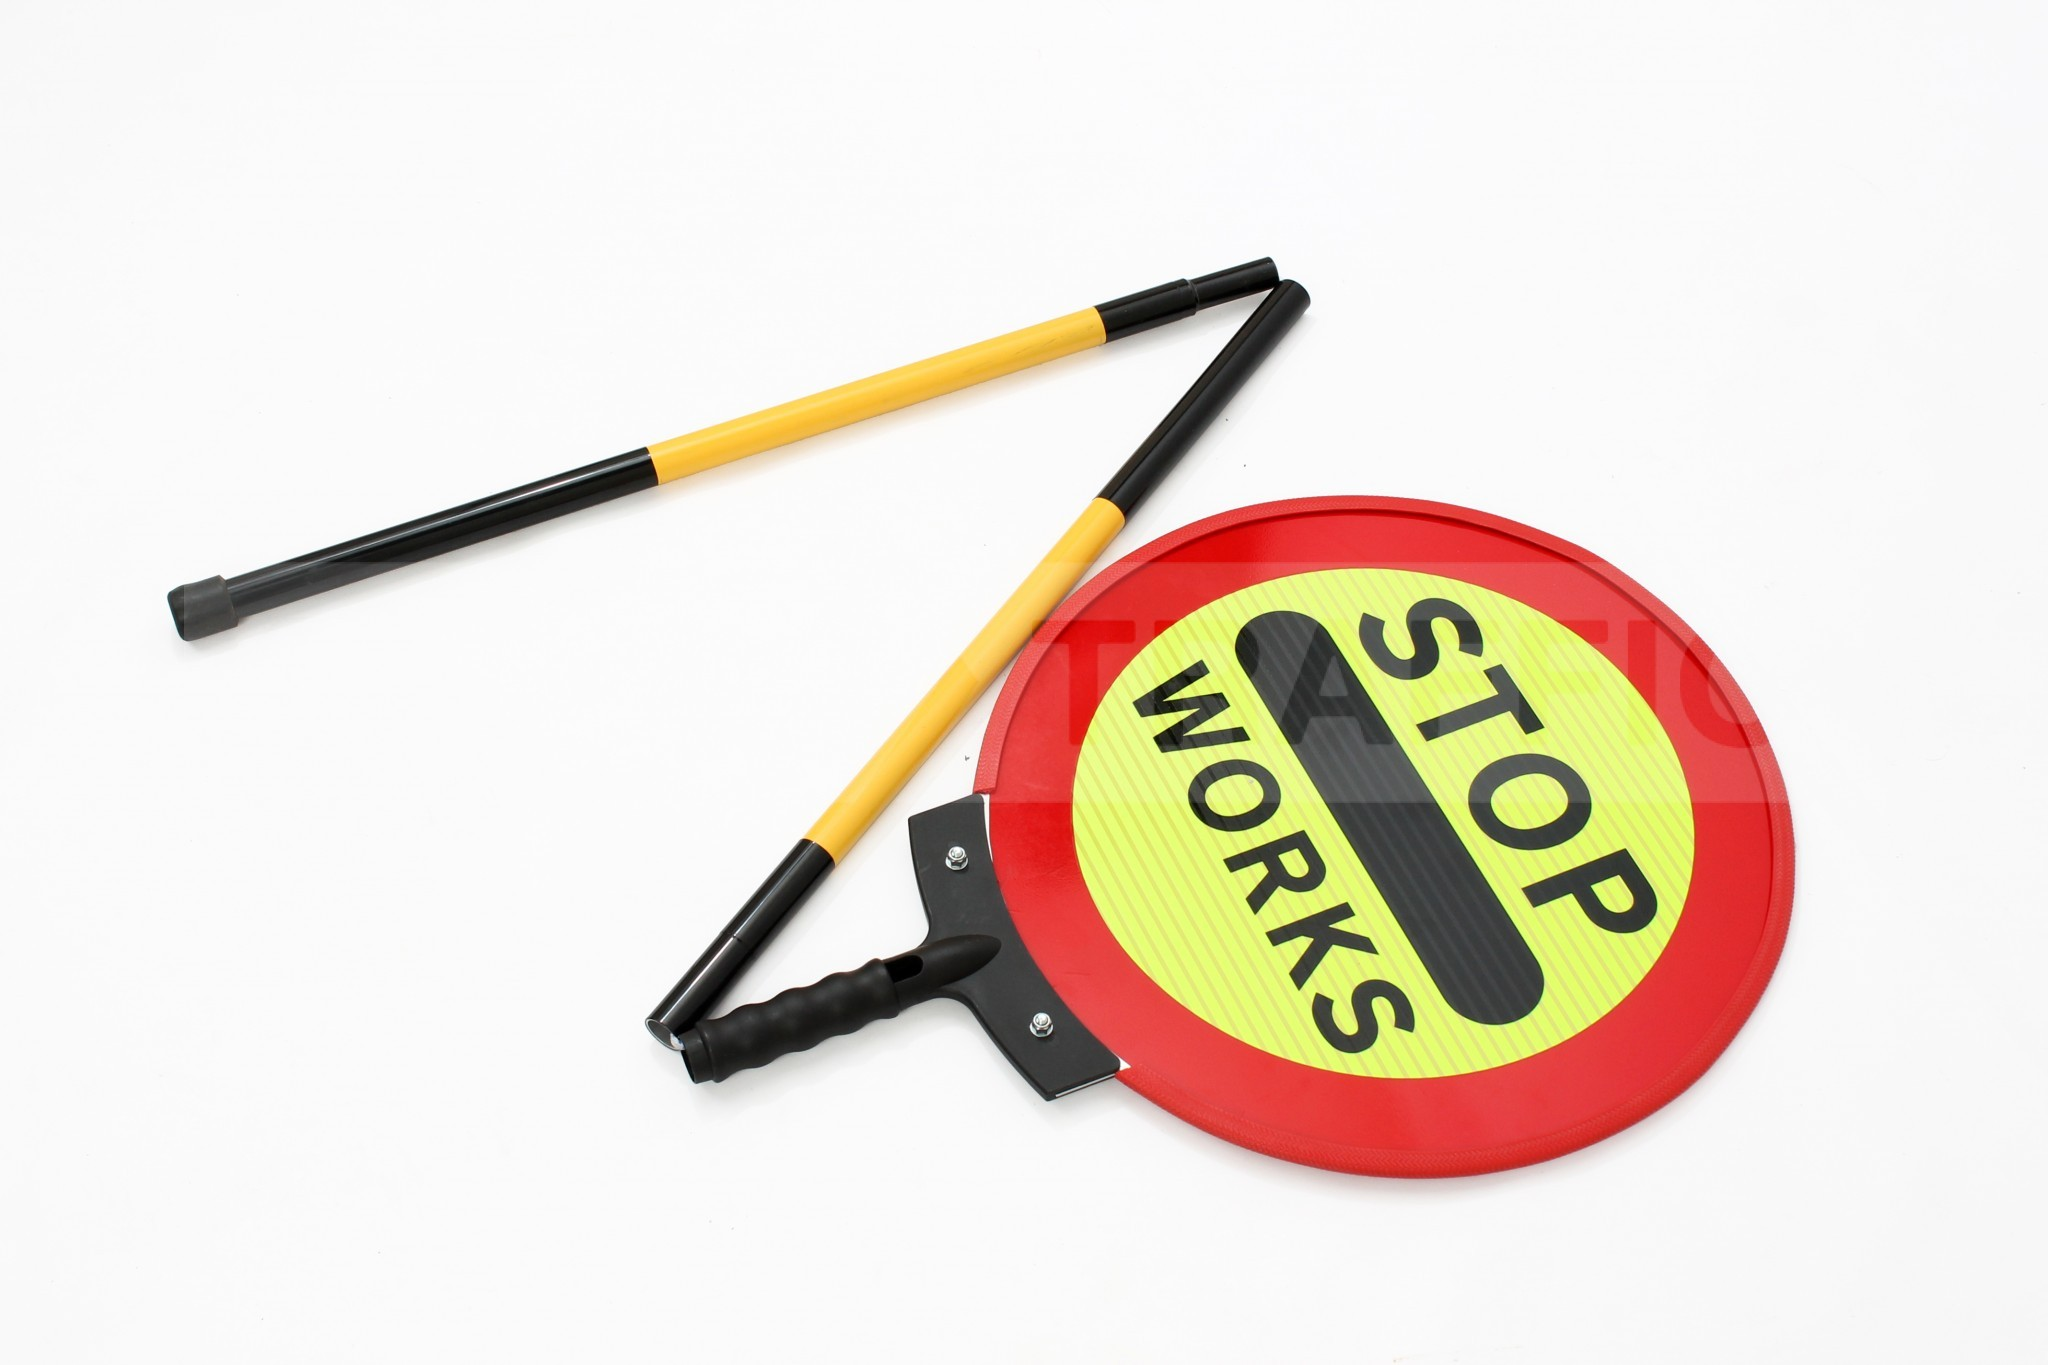 Collapsible handle on STOP WORKS sign